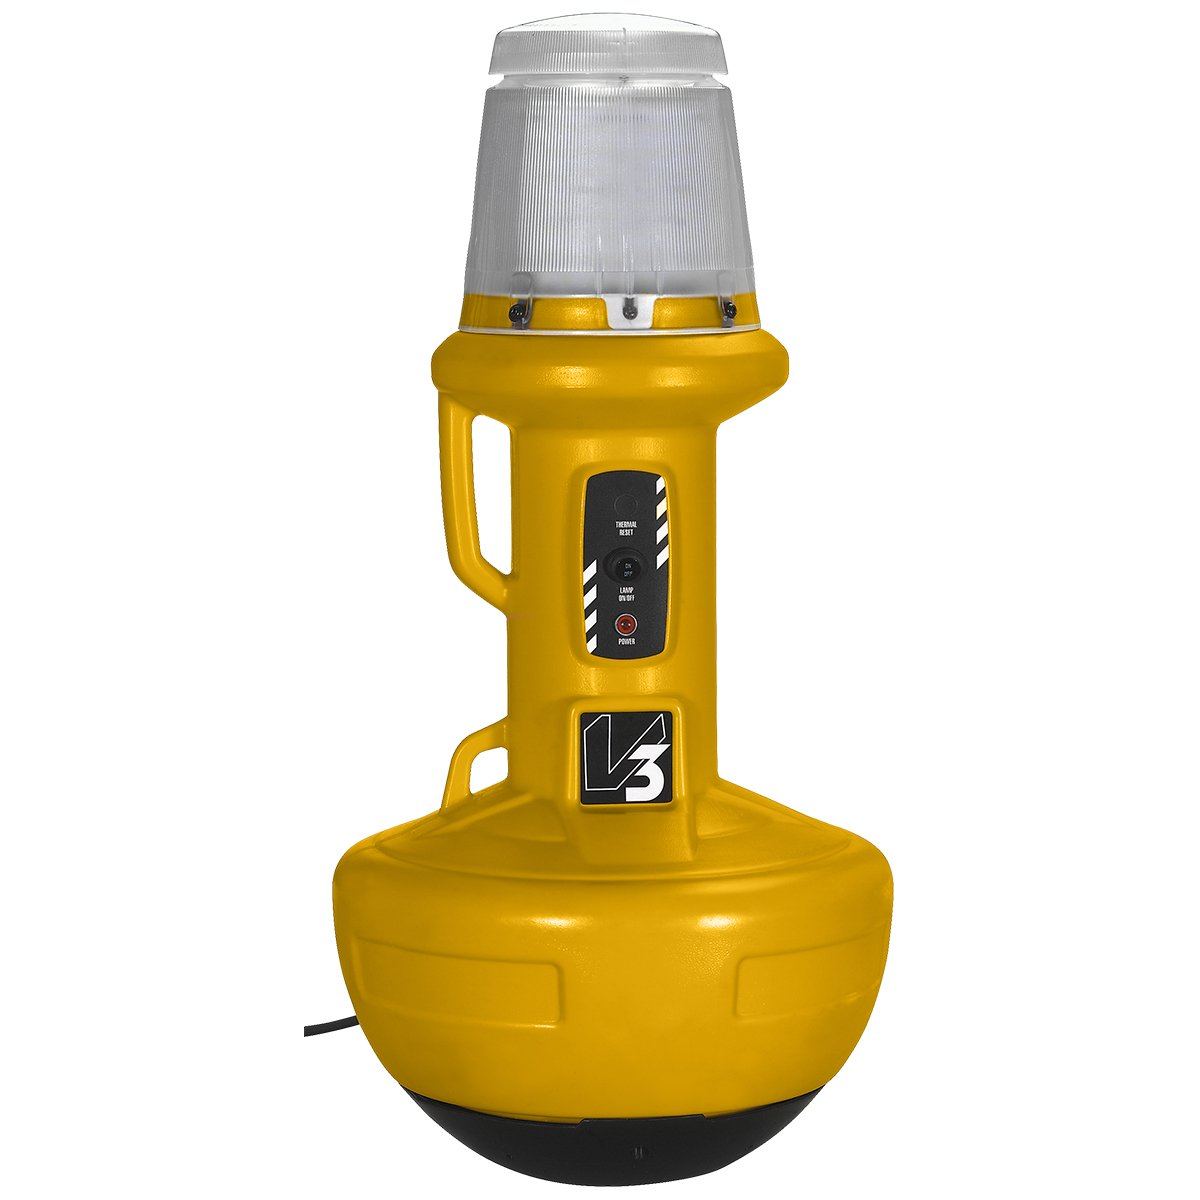 Wobble Light 111303LED Wobblelight V3 200W LED Work Light Patented Self-Righting, Yellow